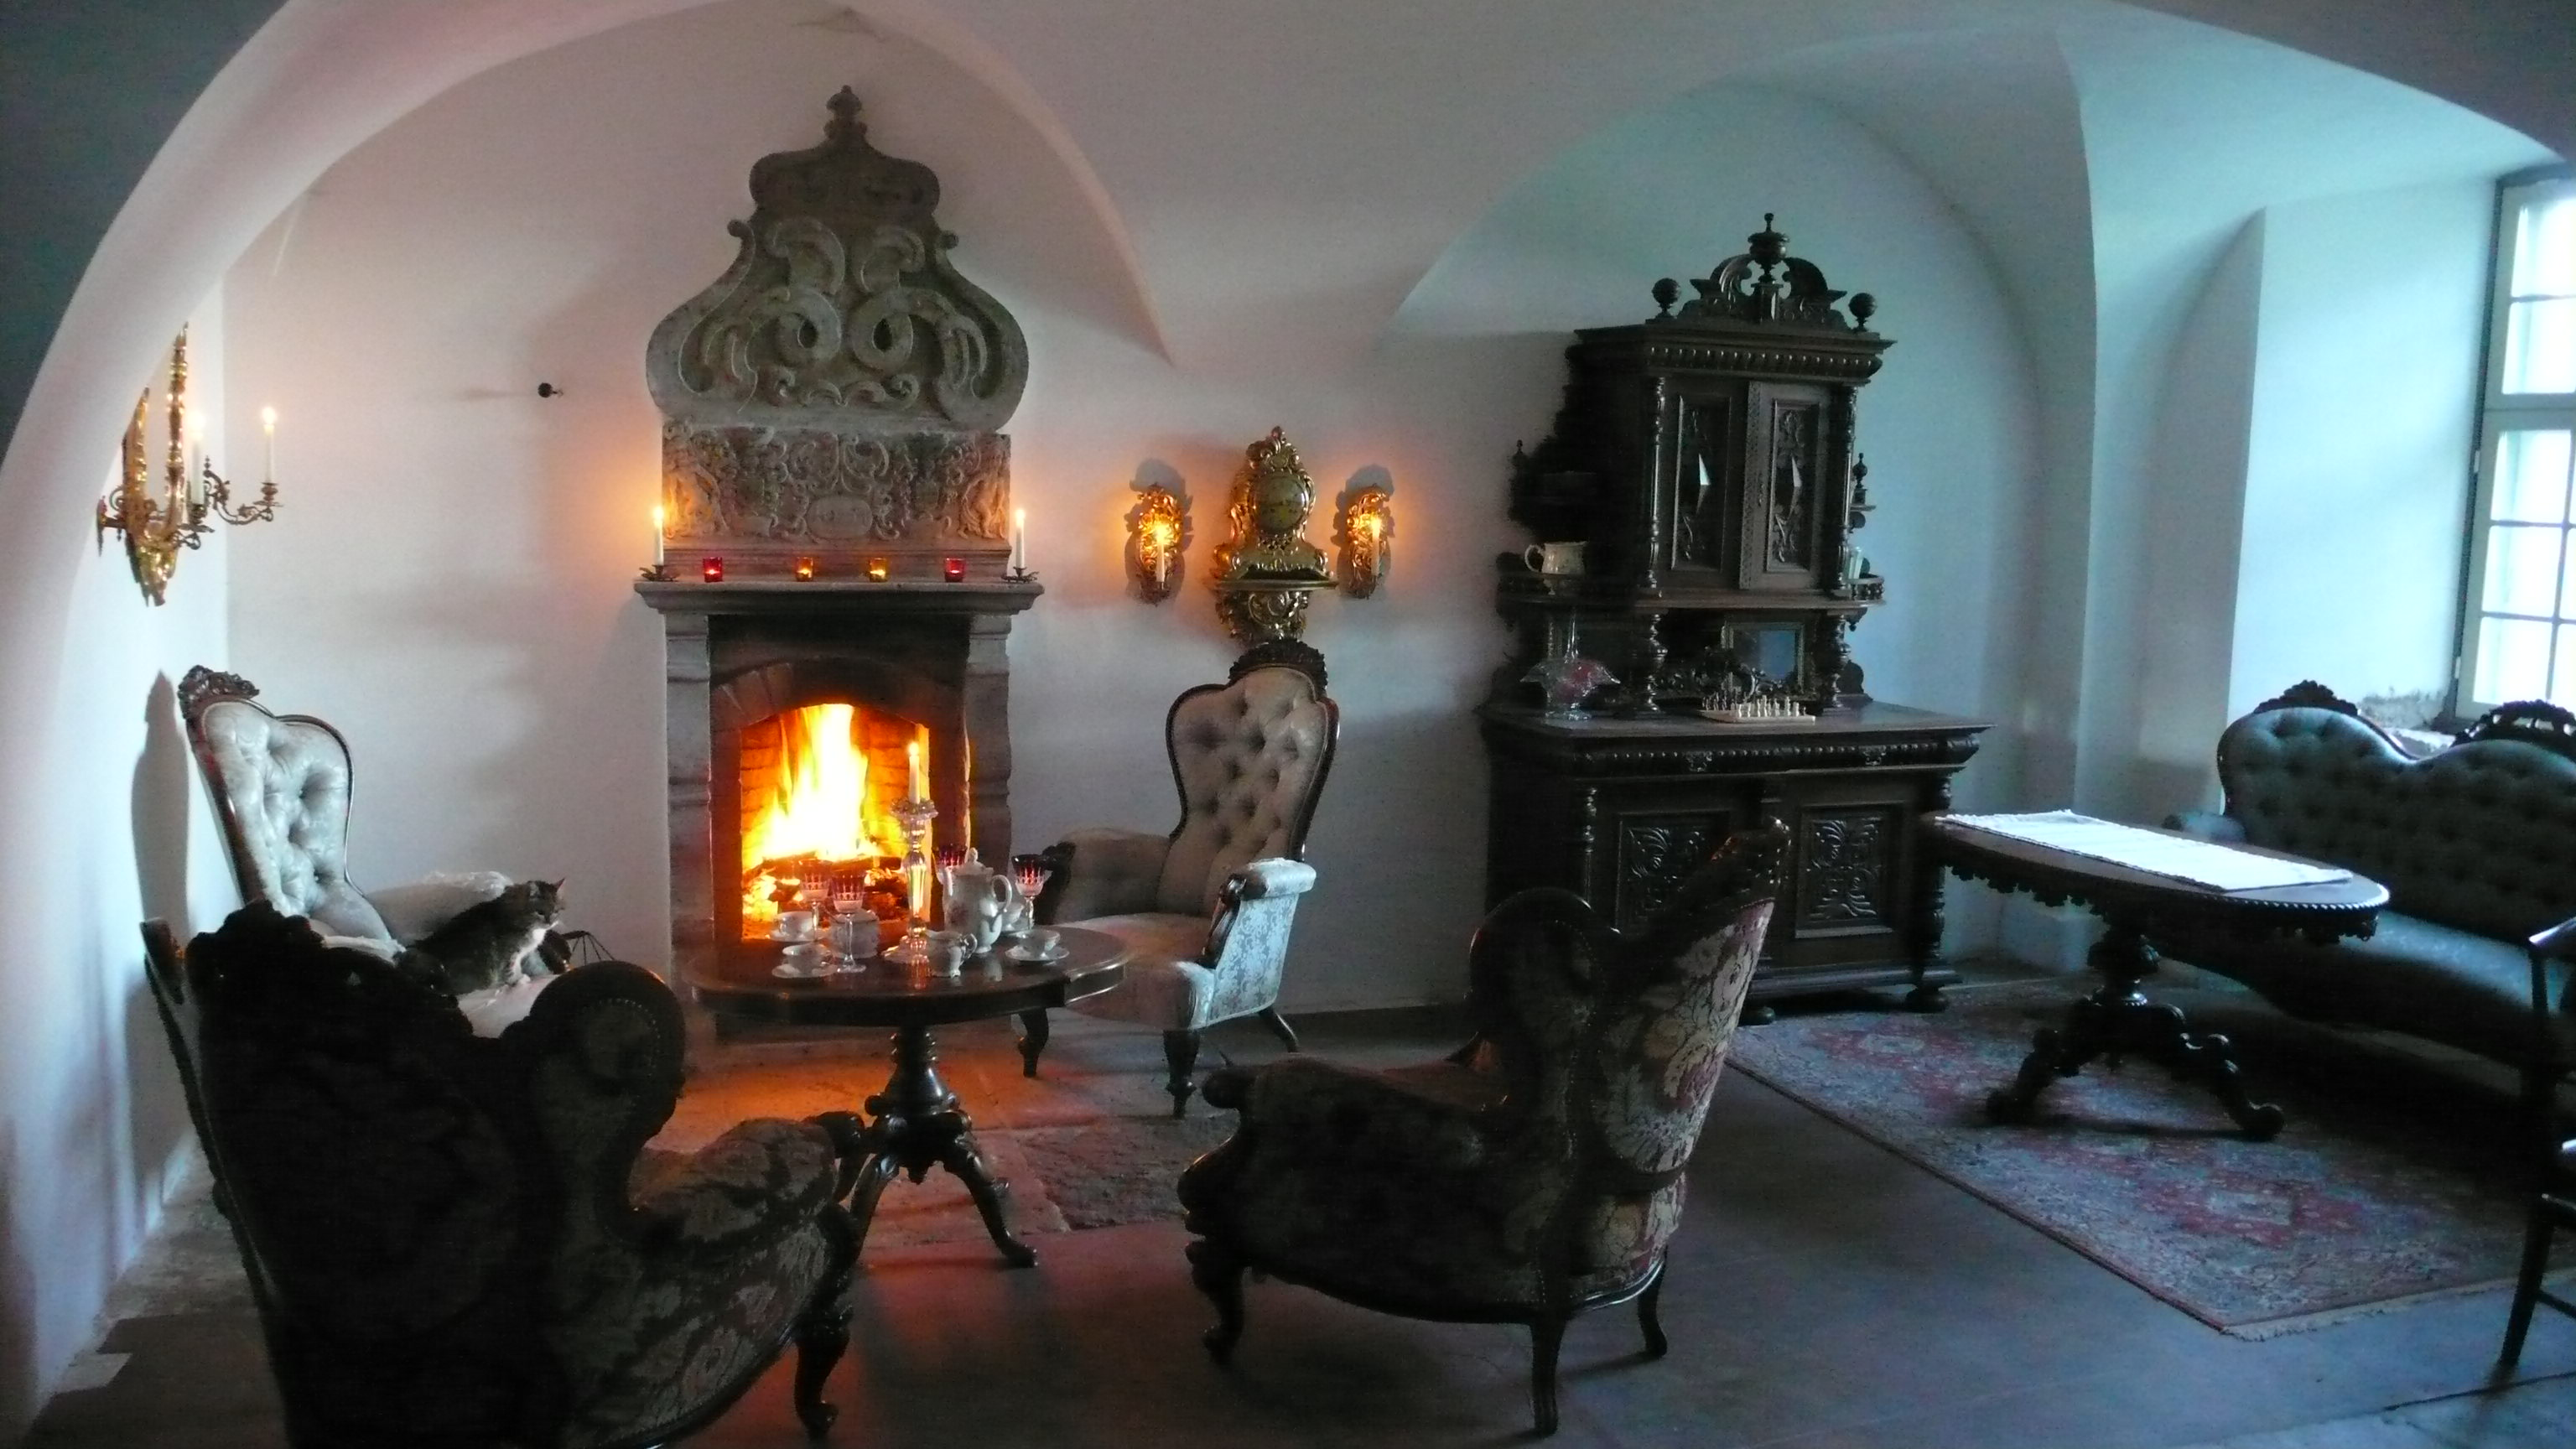 Lunch or dinner in the manor hall at a carved fire place. The overmantel dates back to 1654